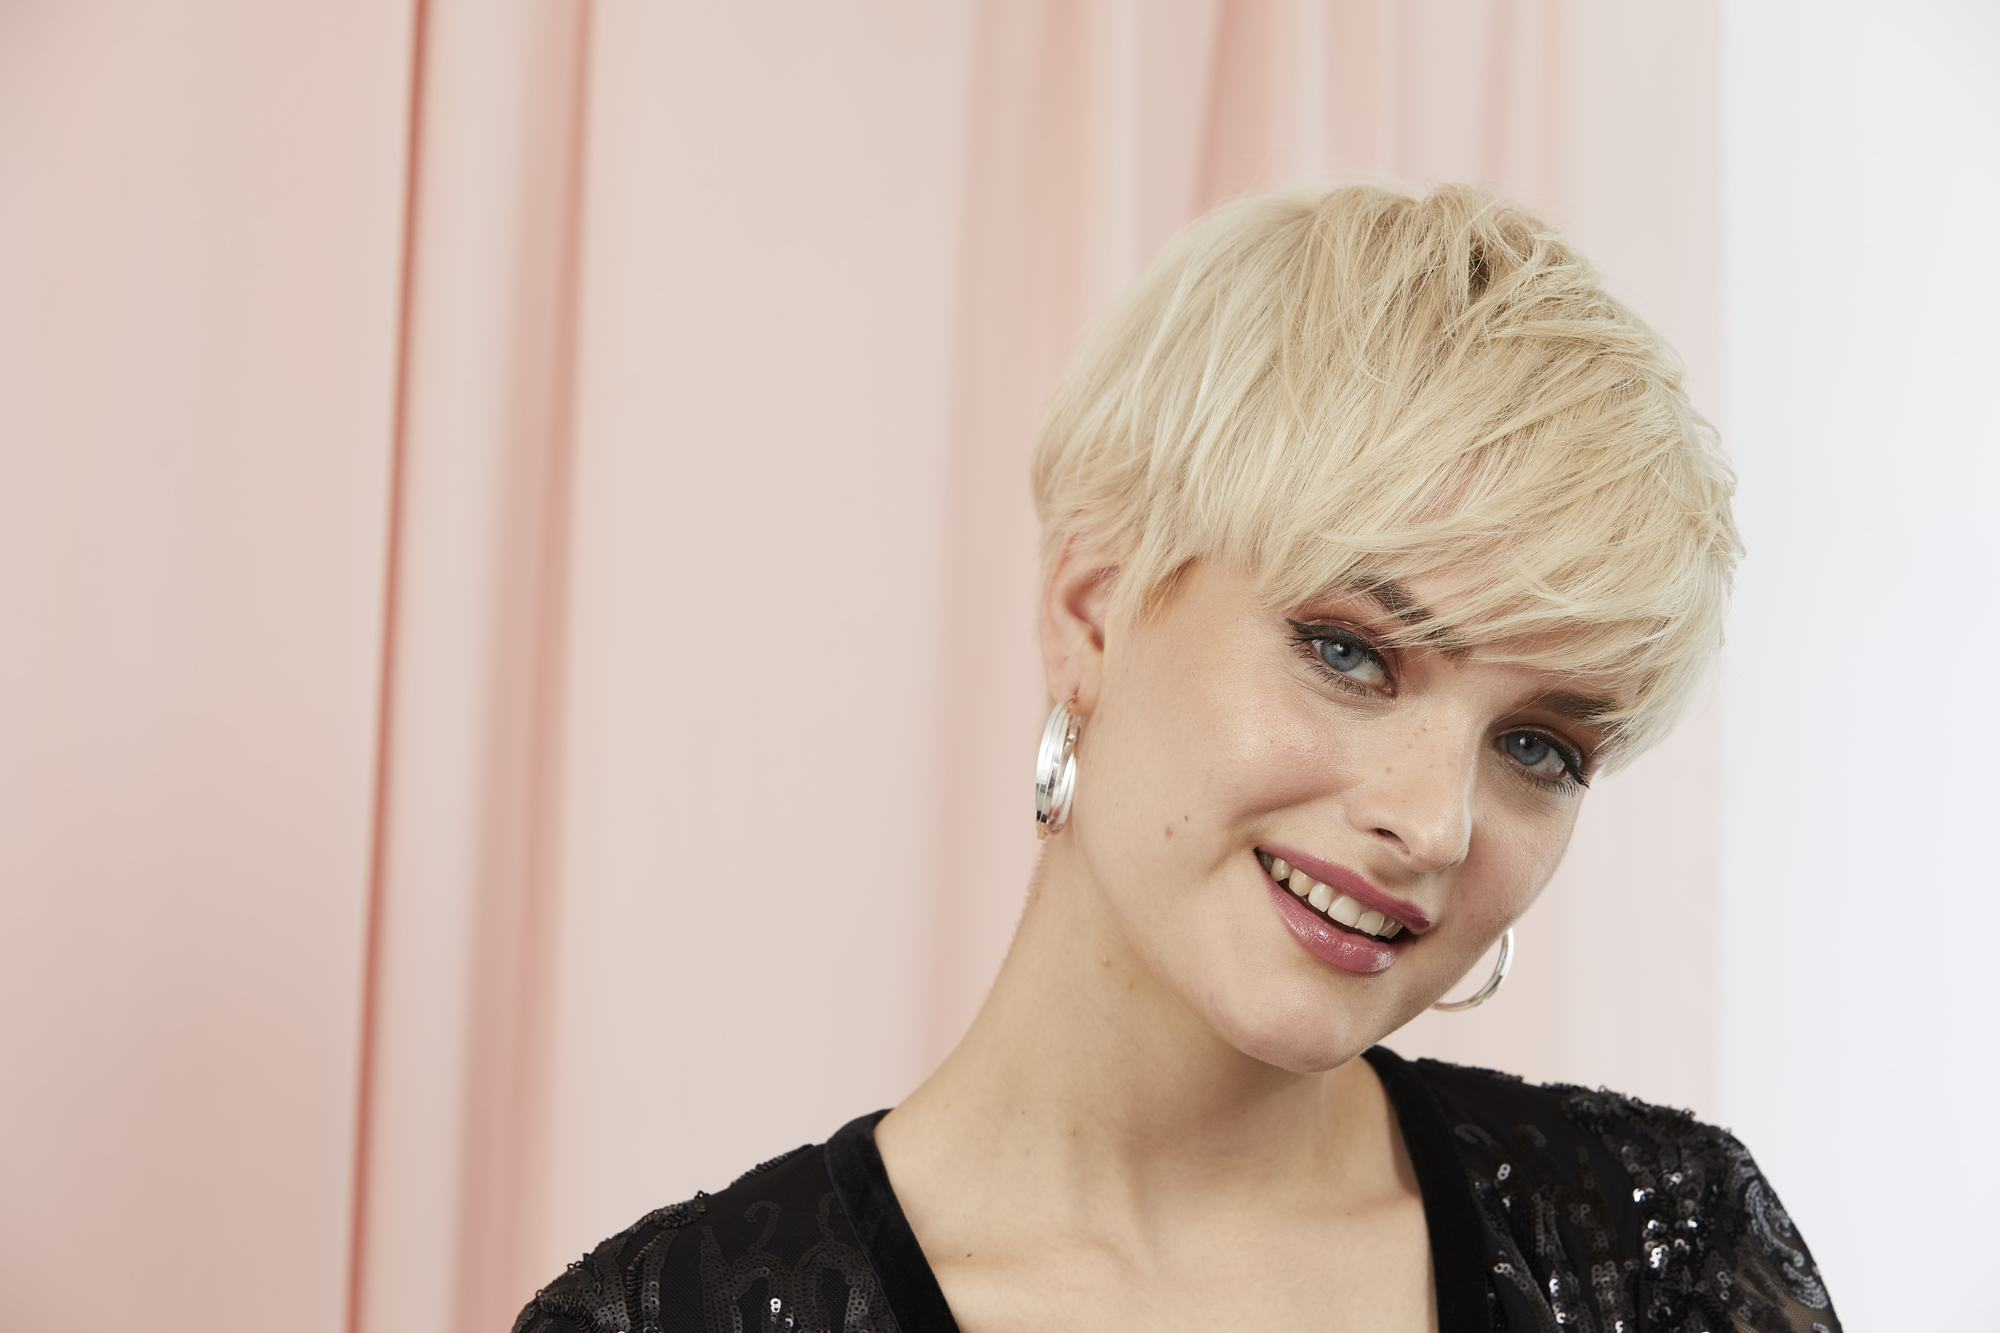 35 Best Pixie Cut Hairstyles For 2020 You Will Want To See With Regard To 2018 Choppy Pixie Haircuts With Short Bangs (View 7 of 20)